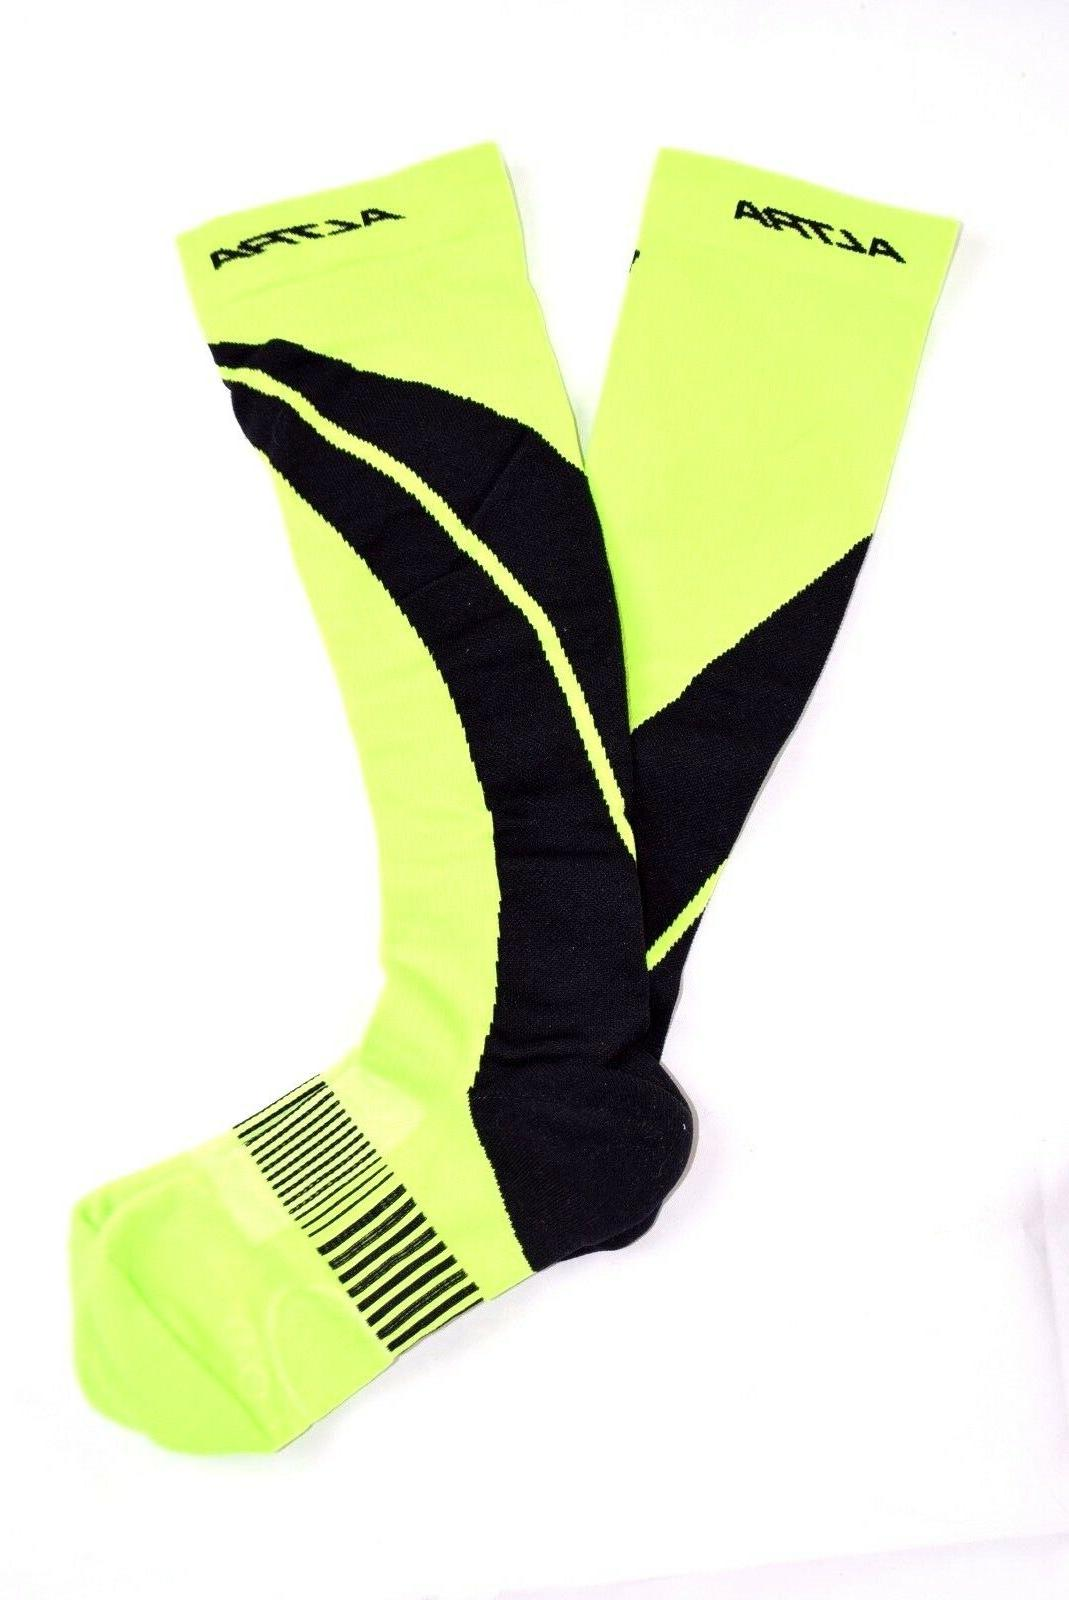 NEW ALTRA Men's Knee High Antimicrobial Compression Performa